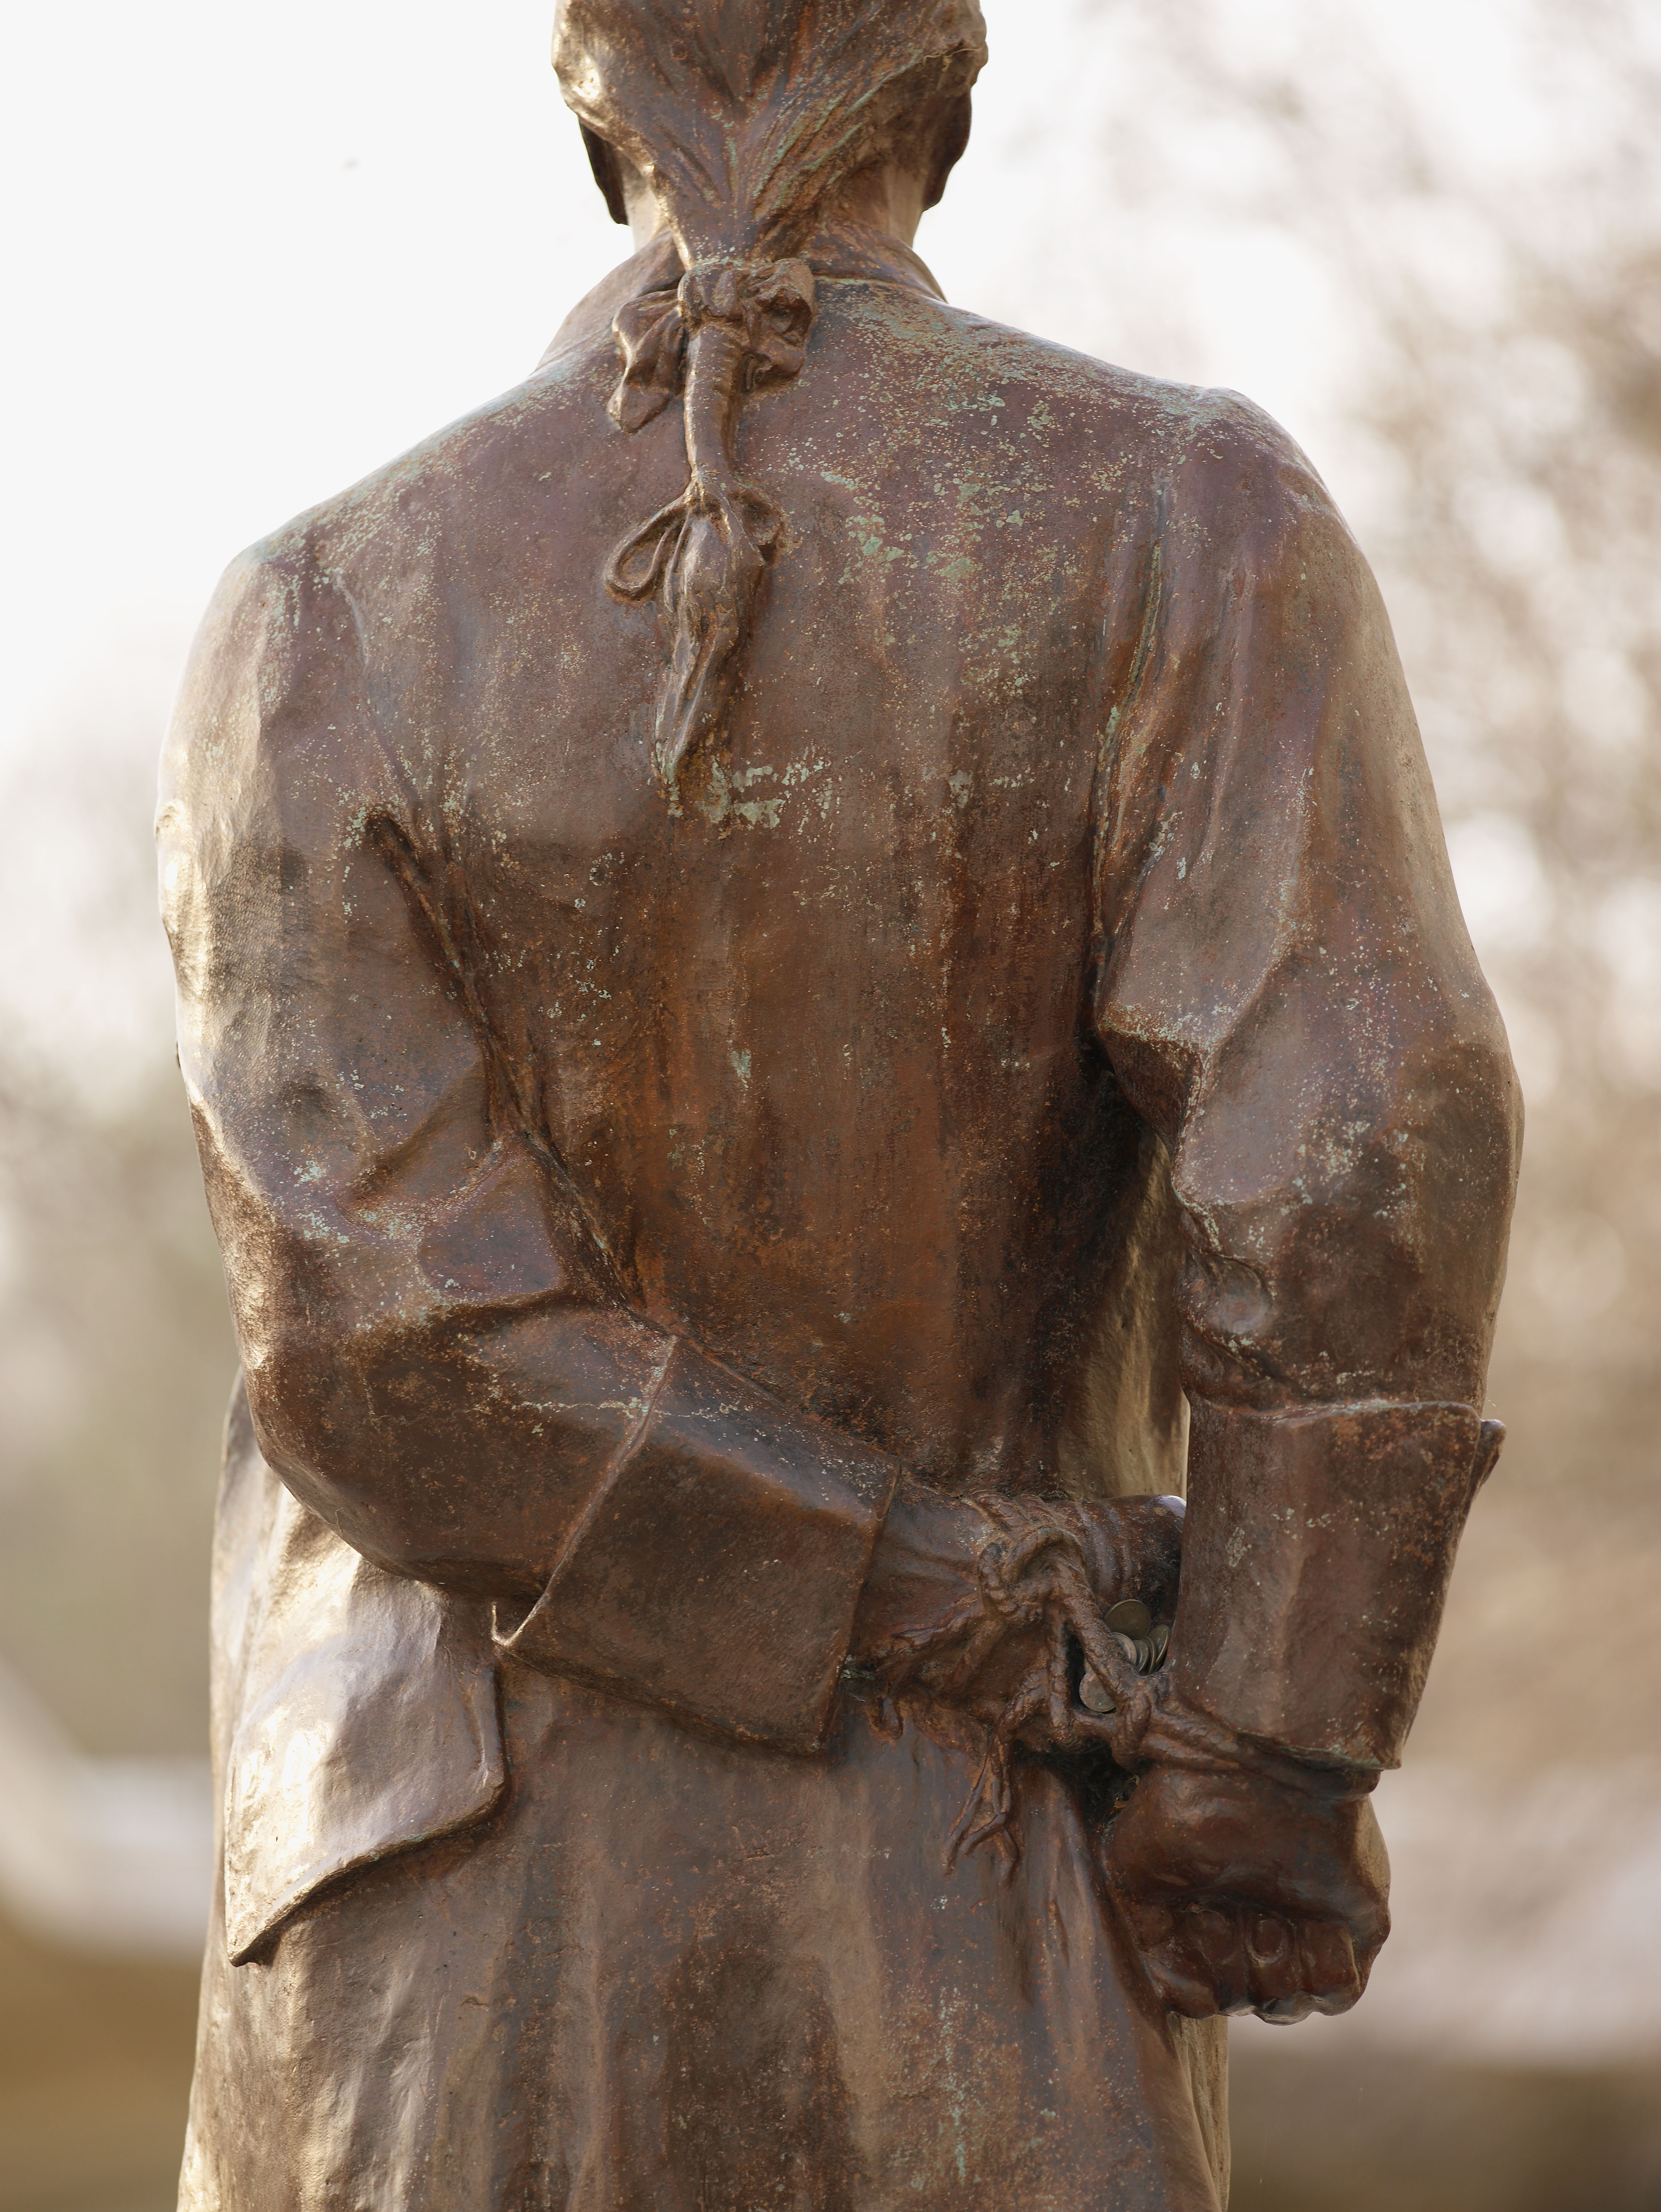 Nathan_Hale_Statue_-_Flickr_-_The_Central_Intelligence_Agency_(1)